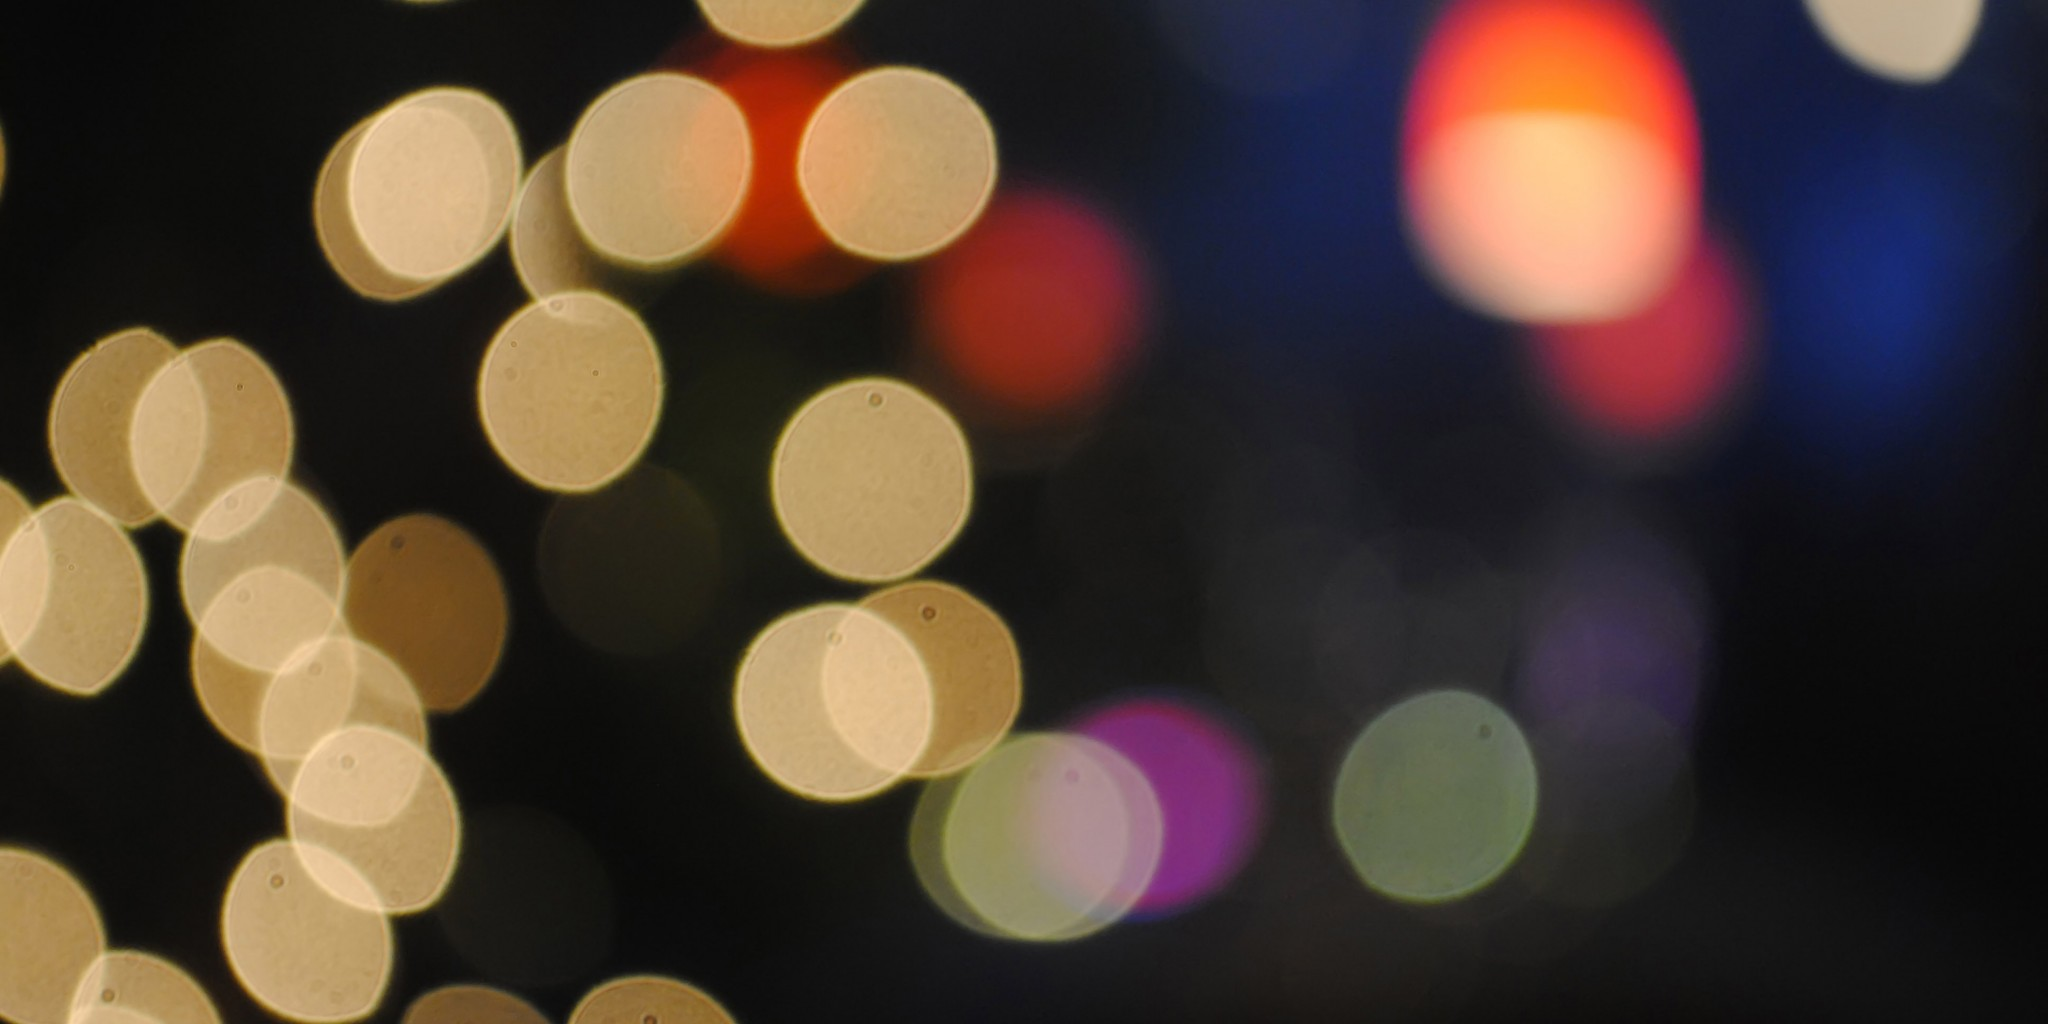 4 Reasons Why Great Visuals Matter for Christmas | TripleWide Media